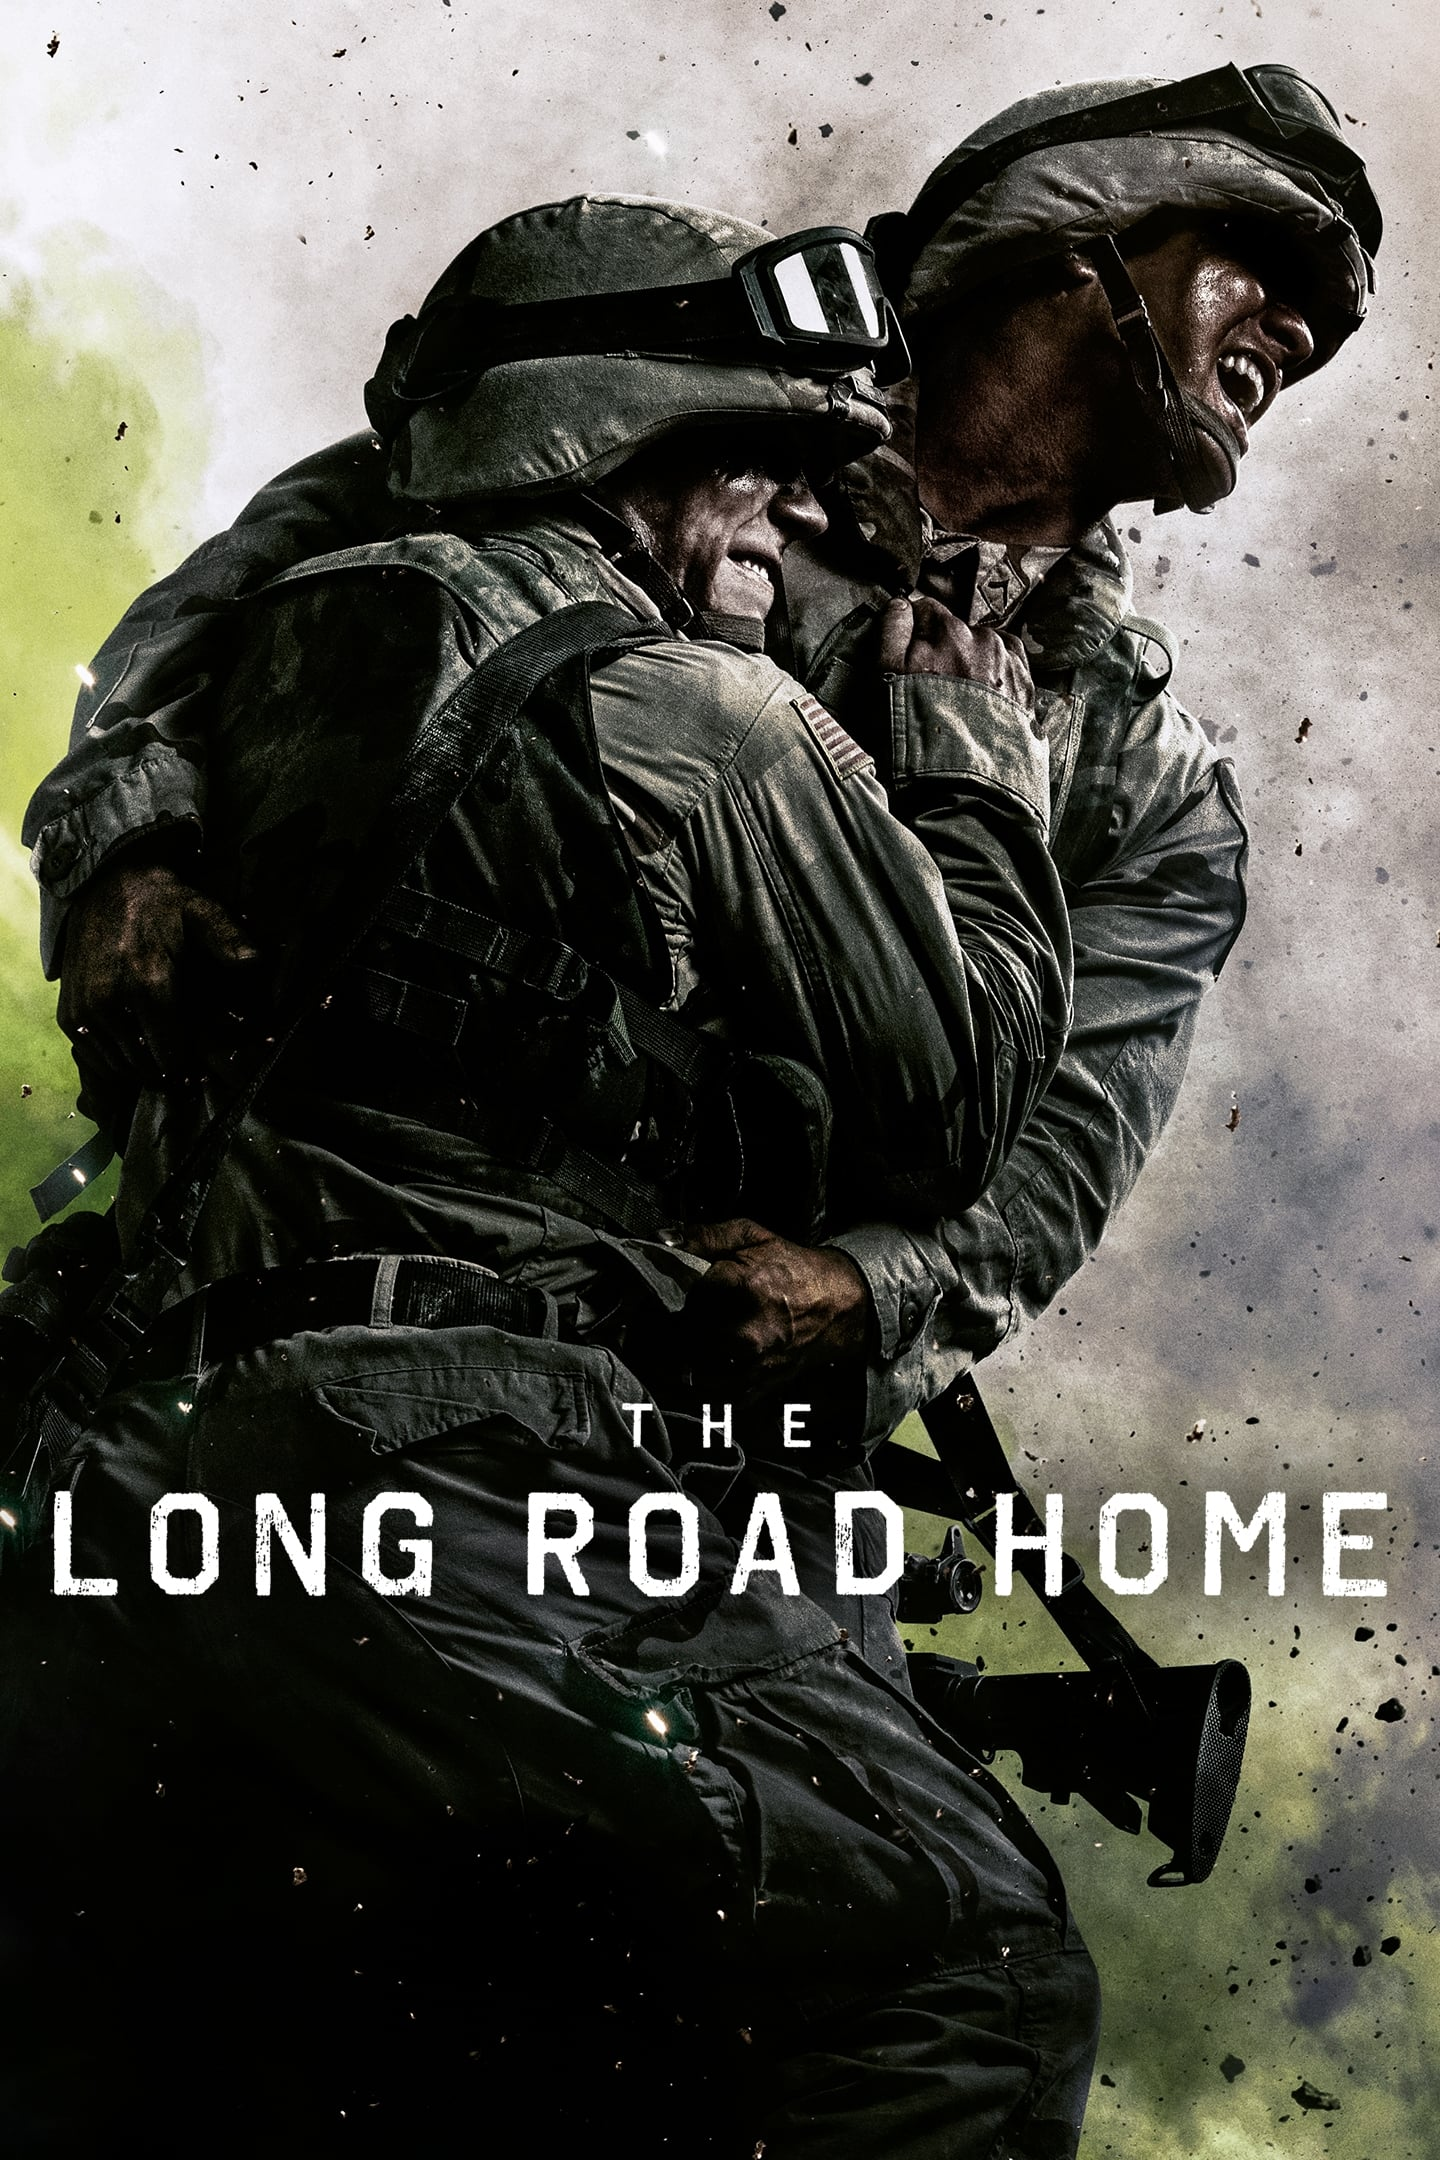 image for The Long Road Home